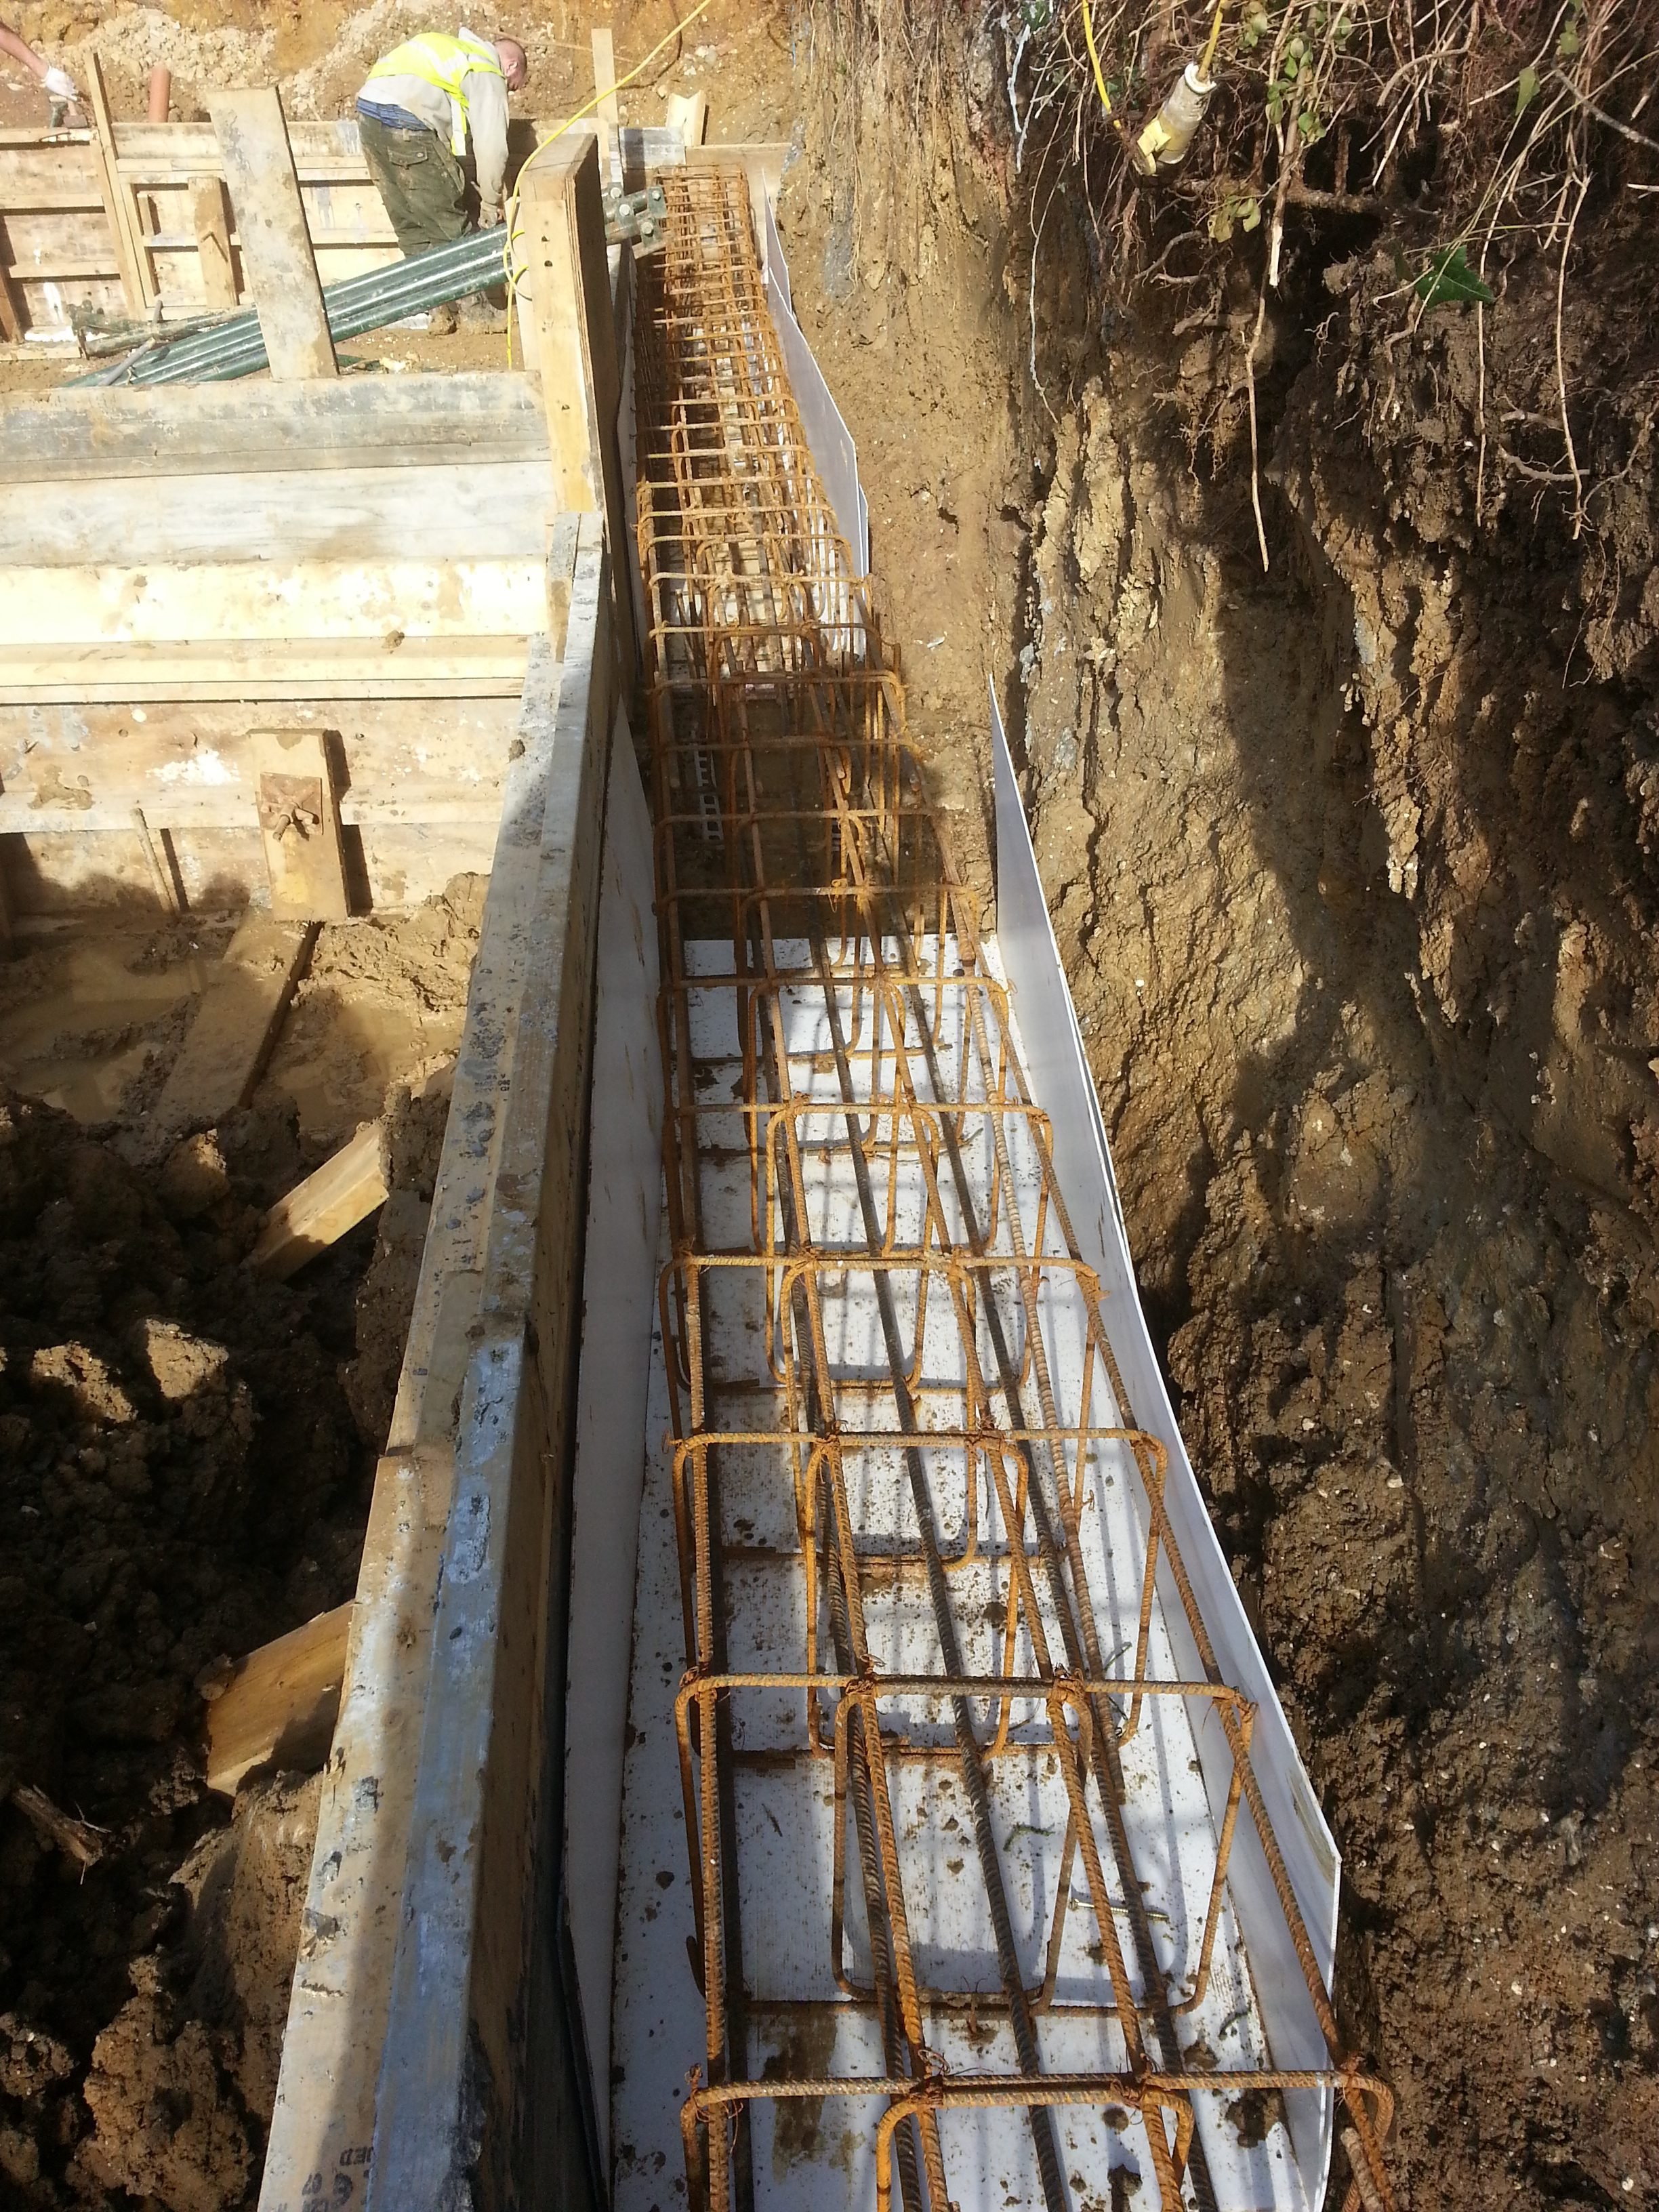 Foundations for the rest of the building joined to the basement walls